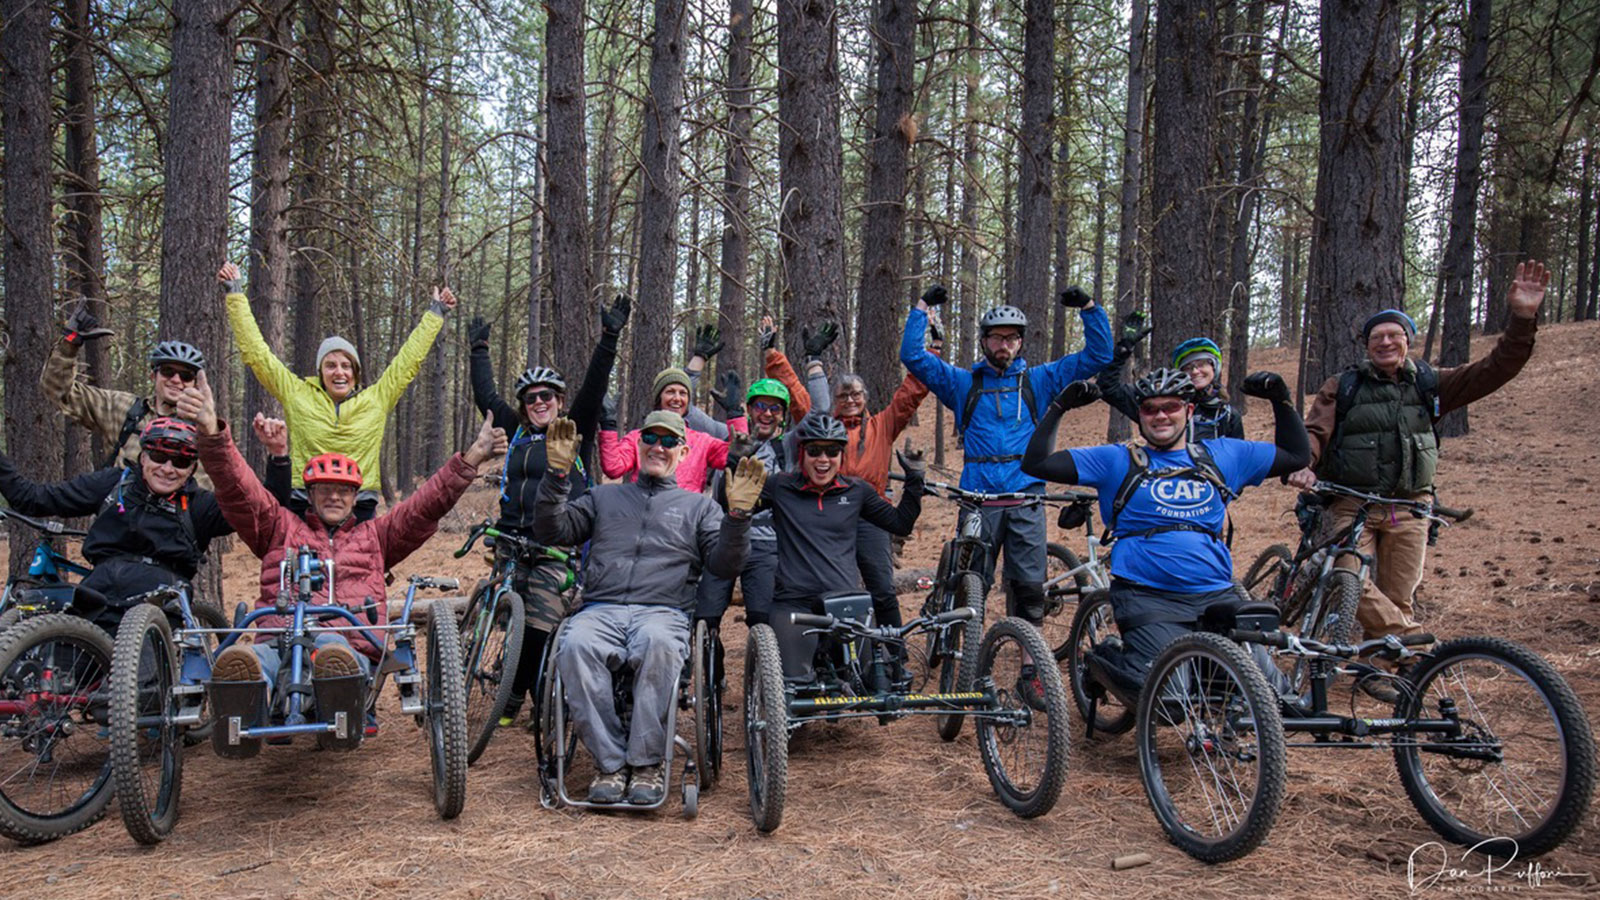 A perfect day in Bend when you're rockin' a wheelchair - Visit Bend